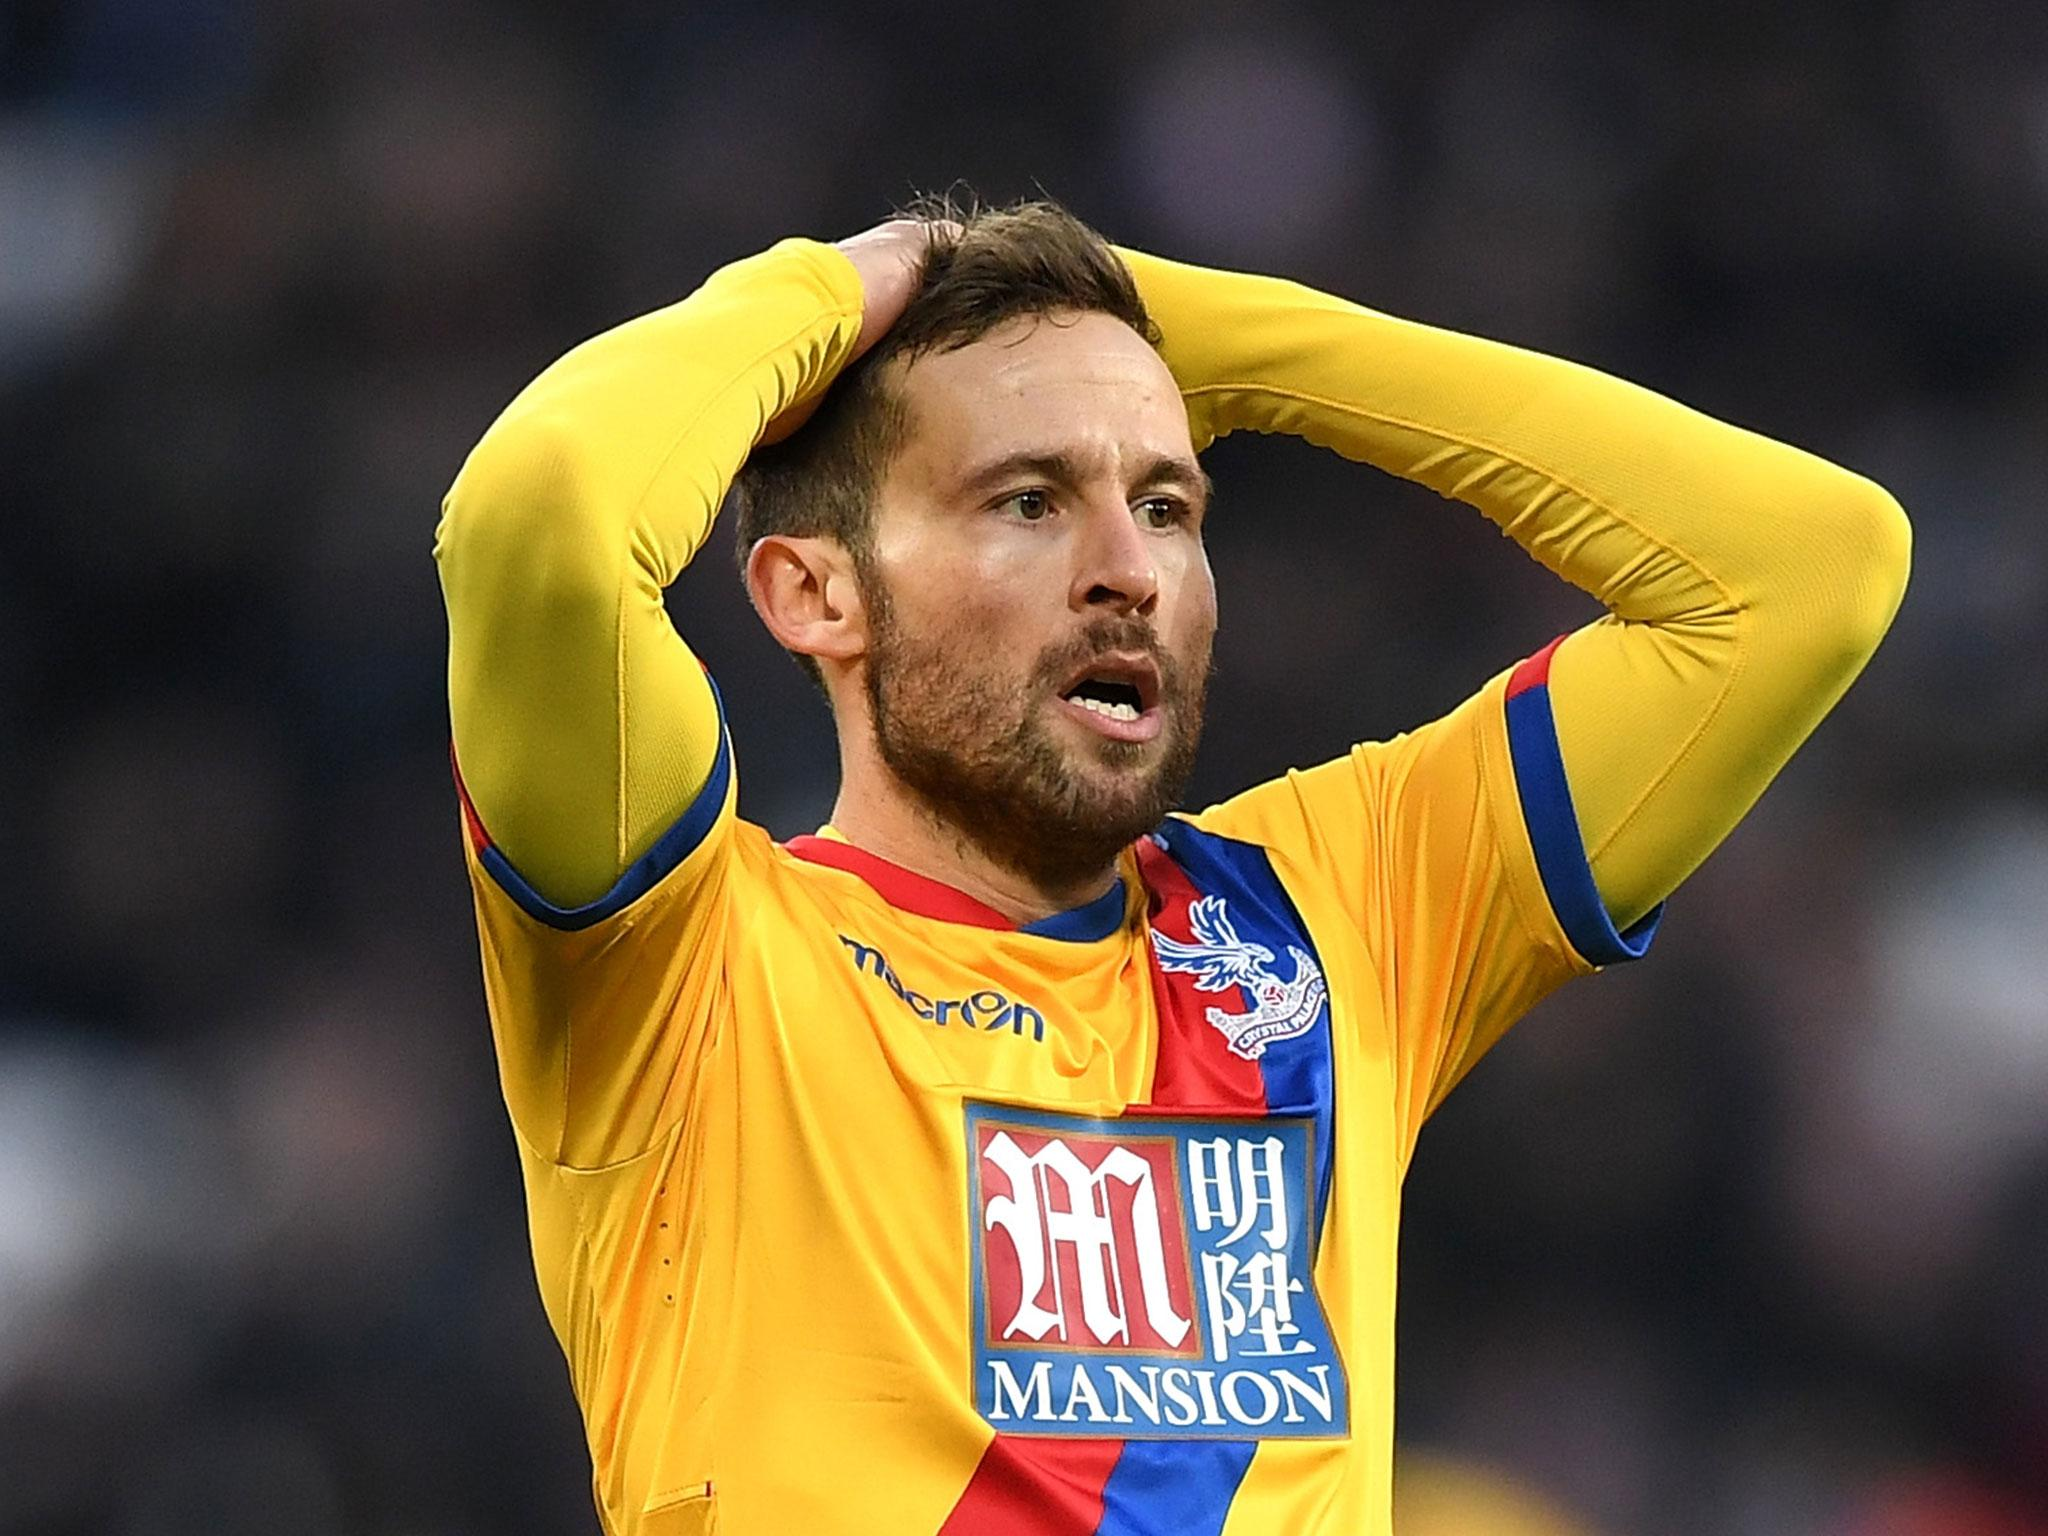 Yohan Cabaye wants to leave Crystal Palace for Marseille this